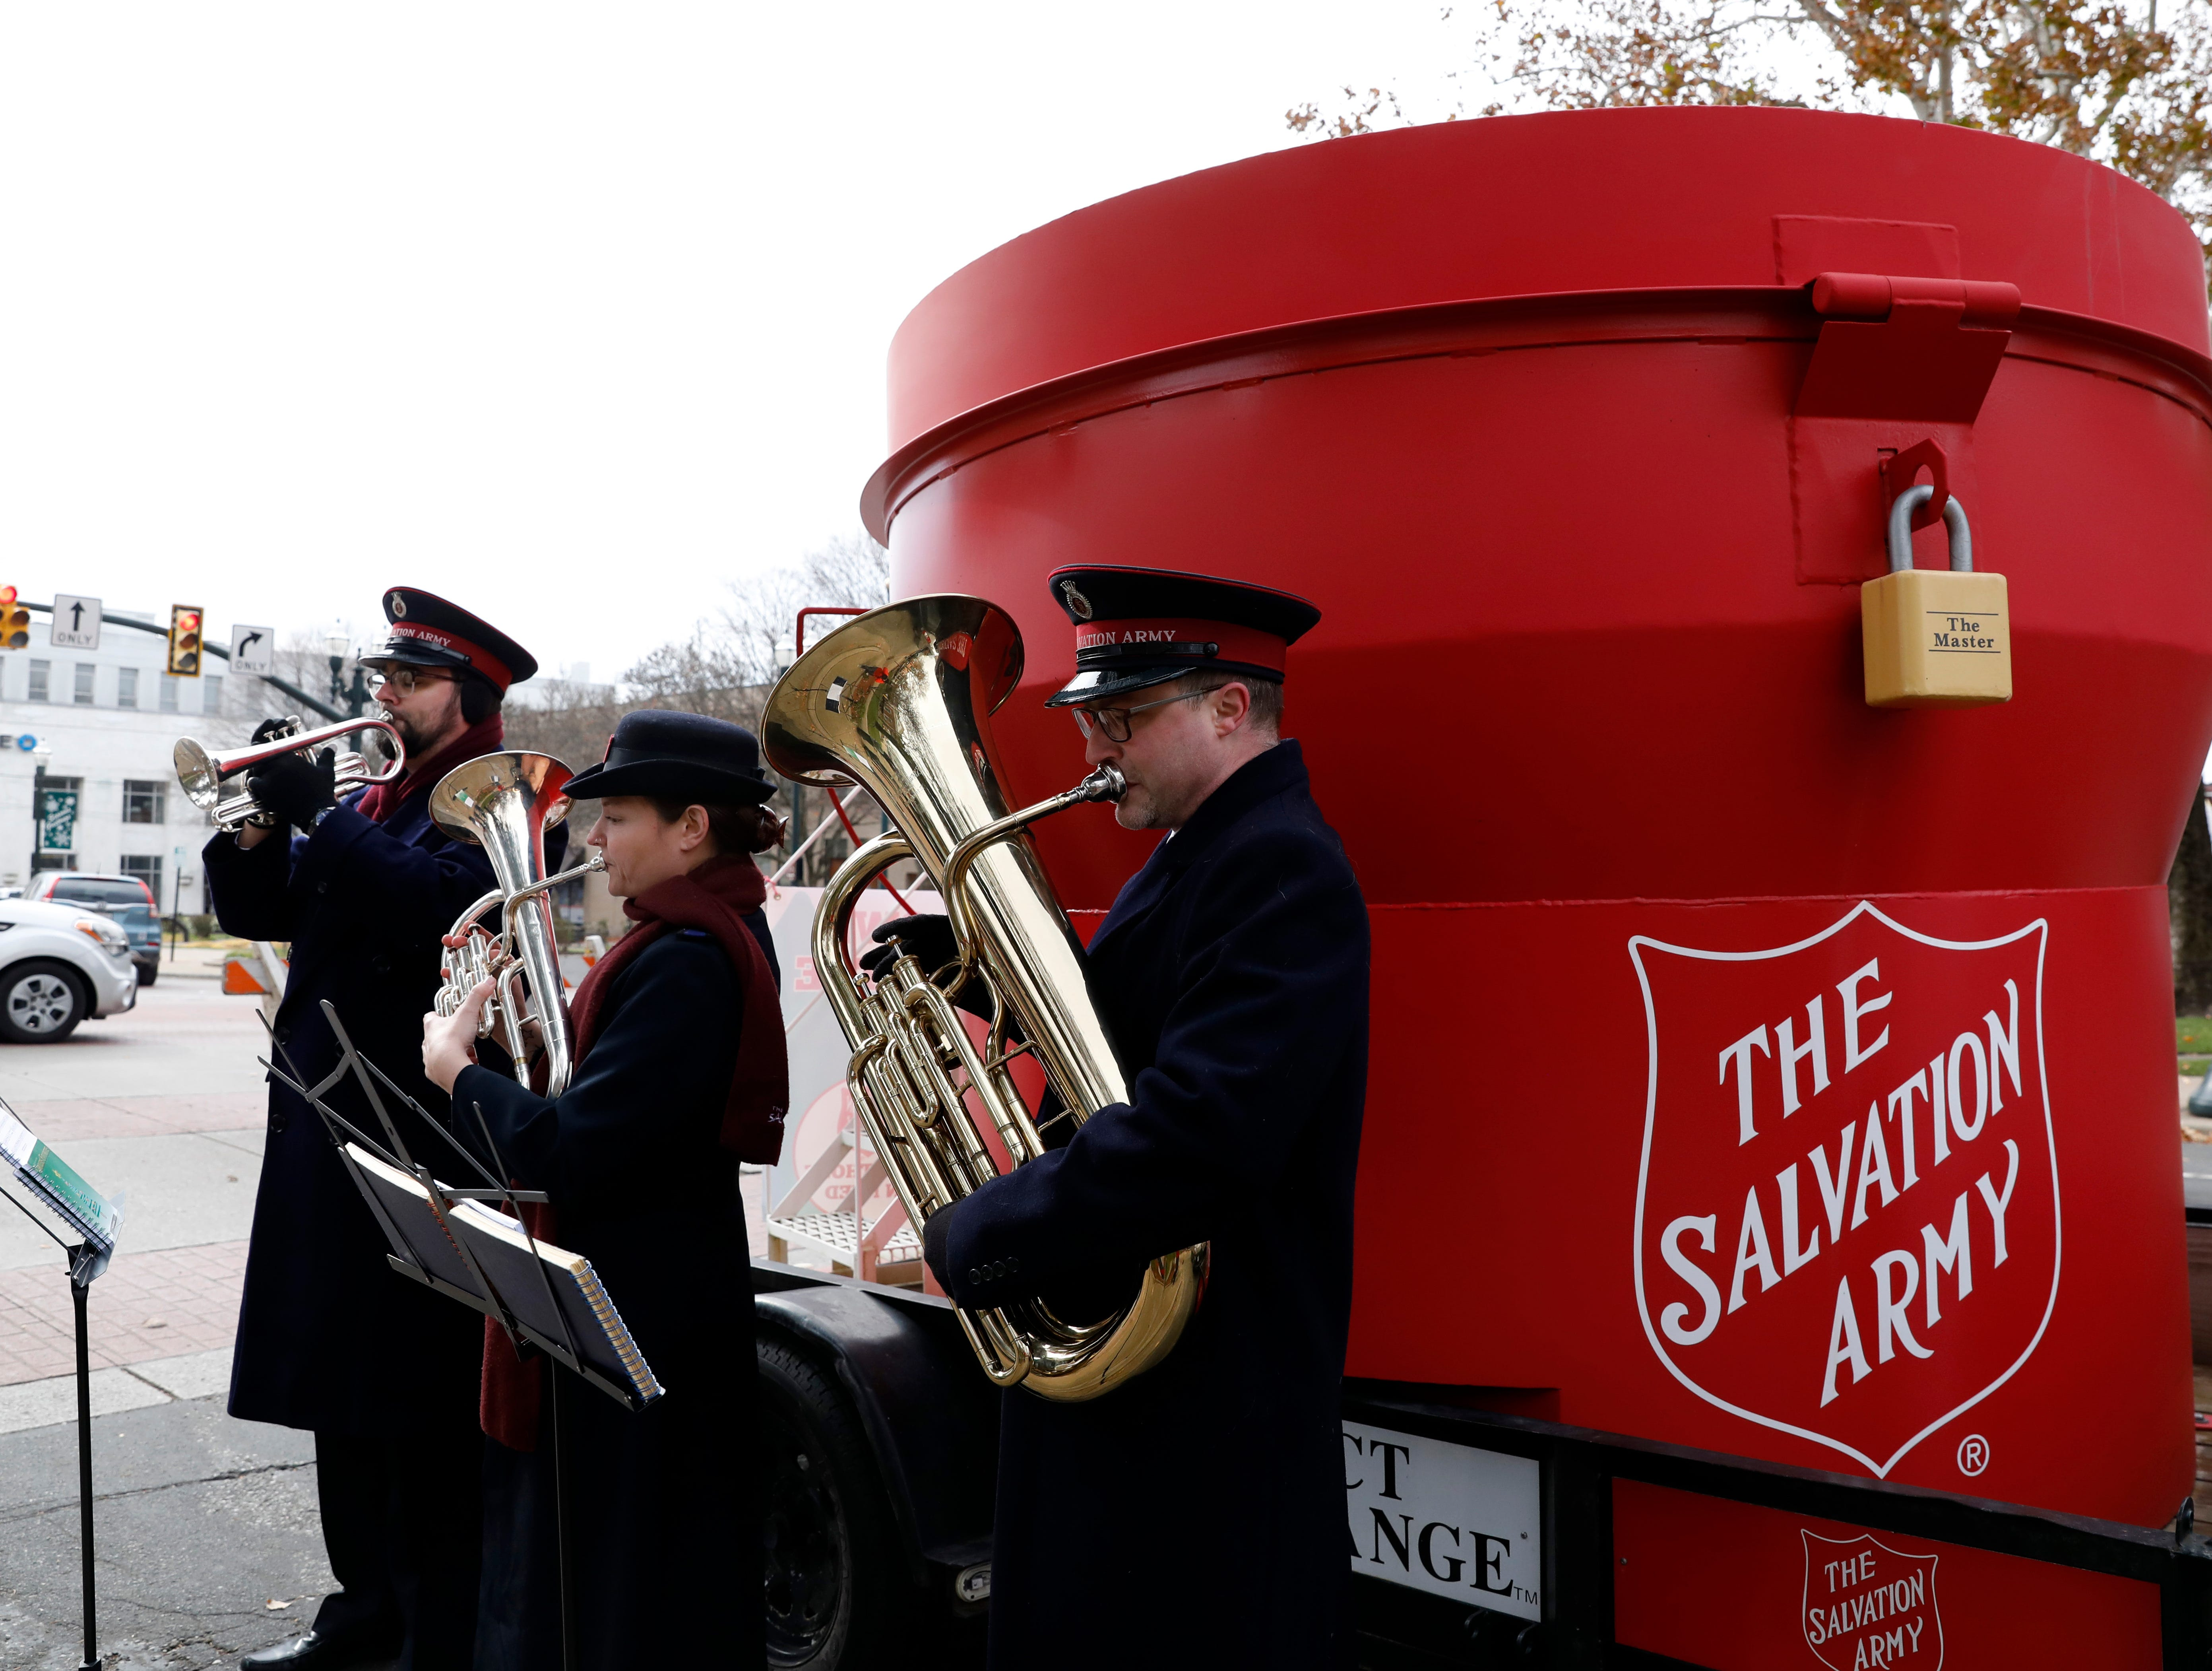 World's largest Salvation Army red kettle visits Lancaster, kicks off annual fundraiser